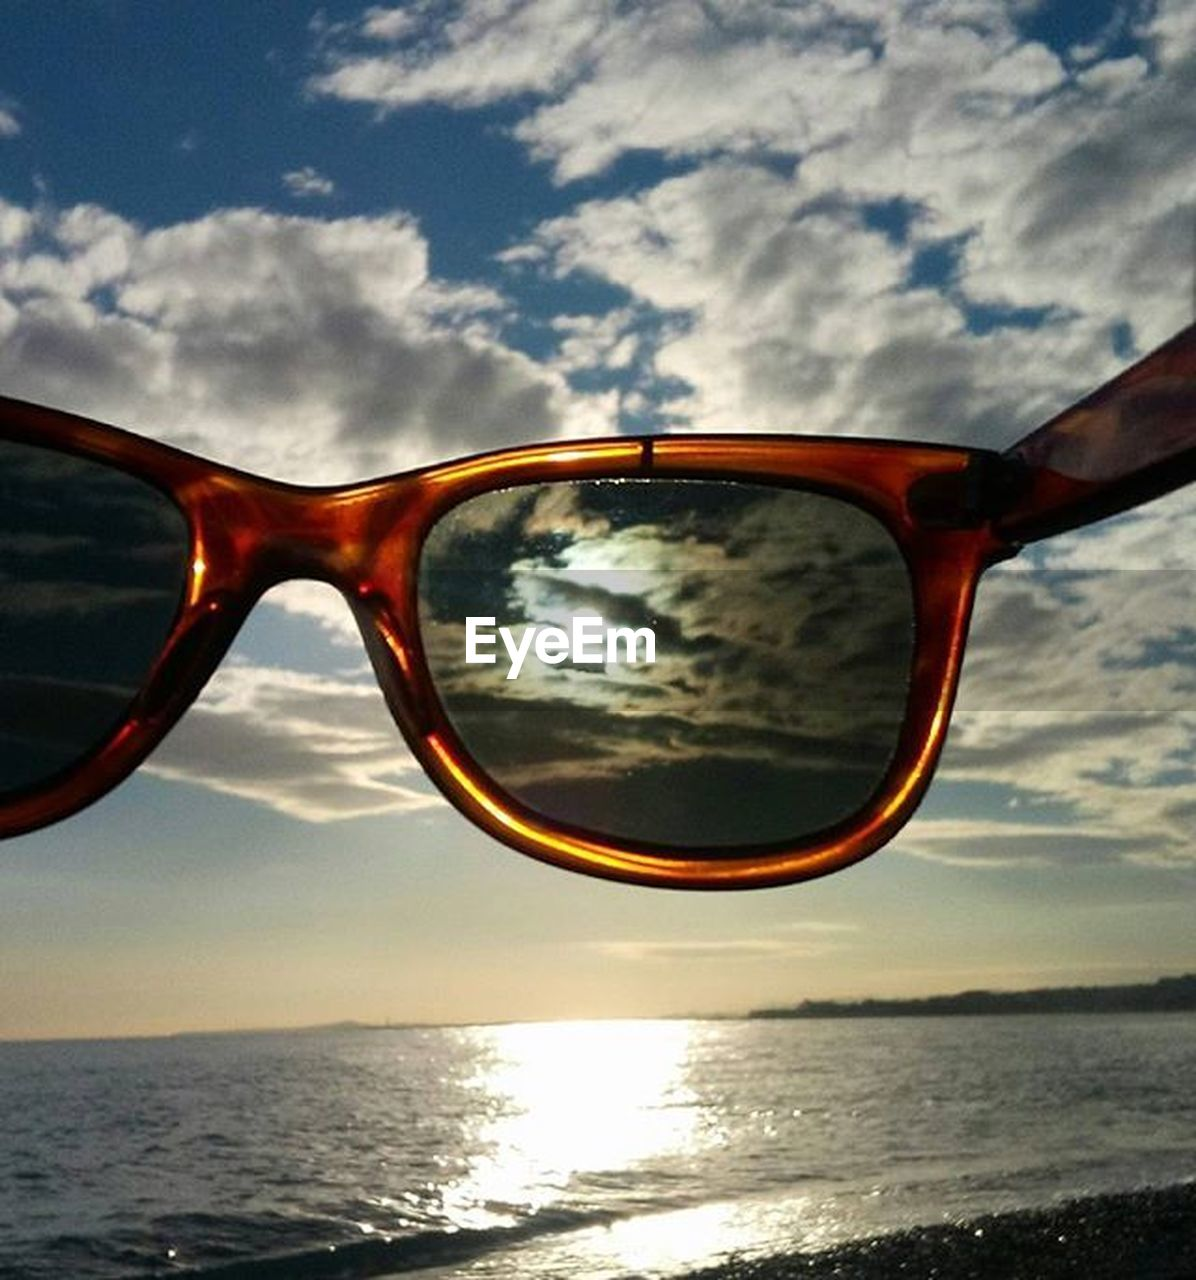 sunglasses, reflection, eyewear, eyeglasses, vision, sky, glasses, cloud - sky, eyesight, cool, nature, water, tranquil scene, no people, outdoors, day, sea, close-up